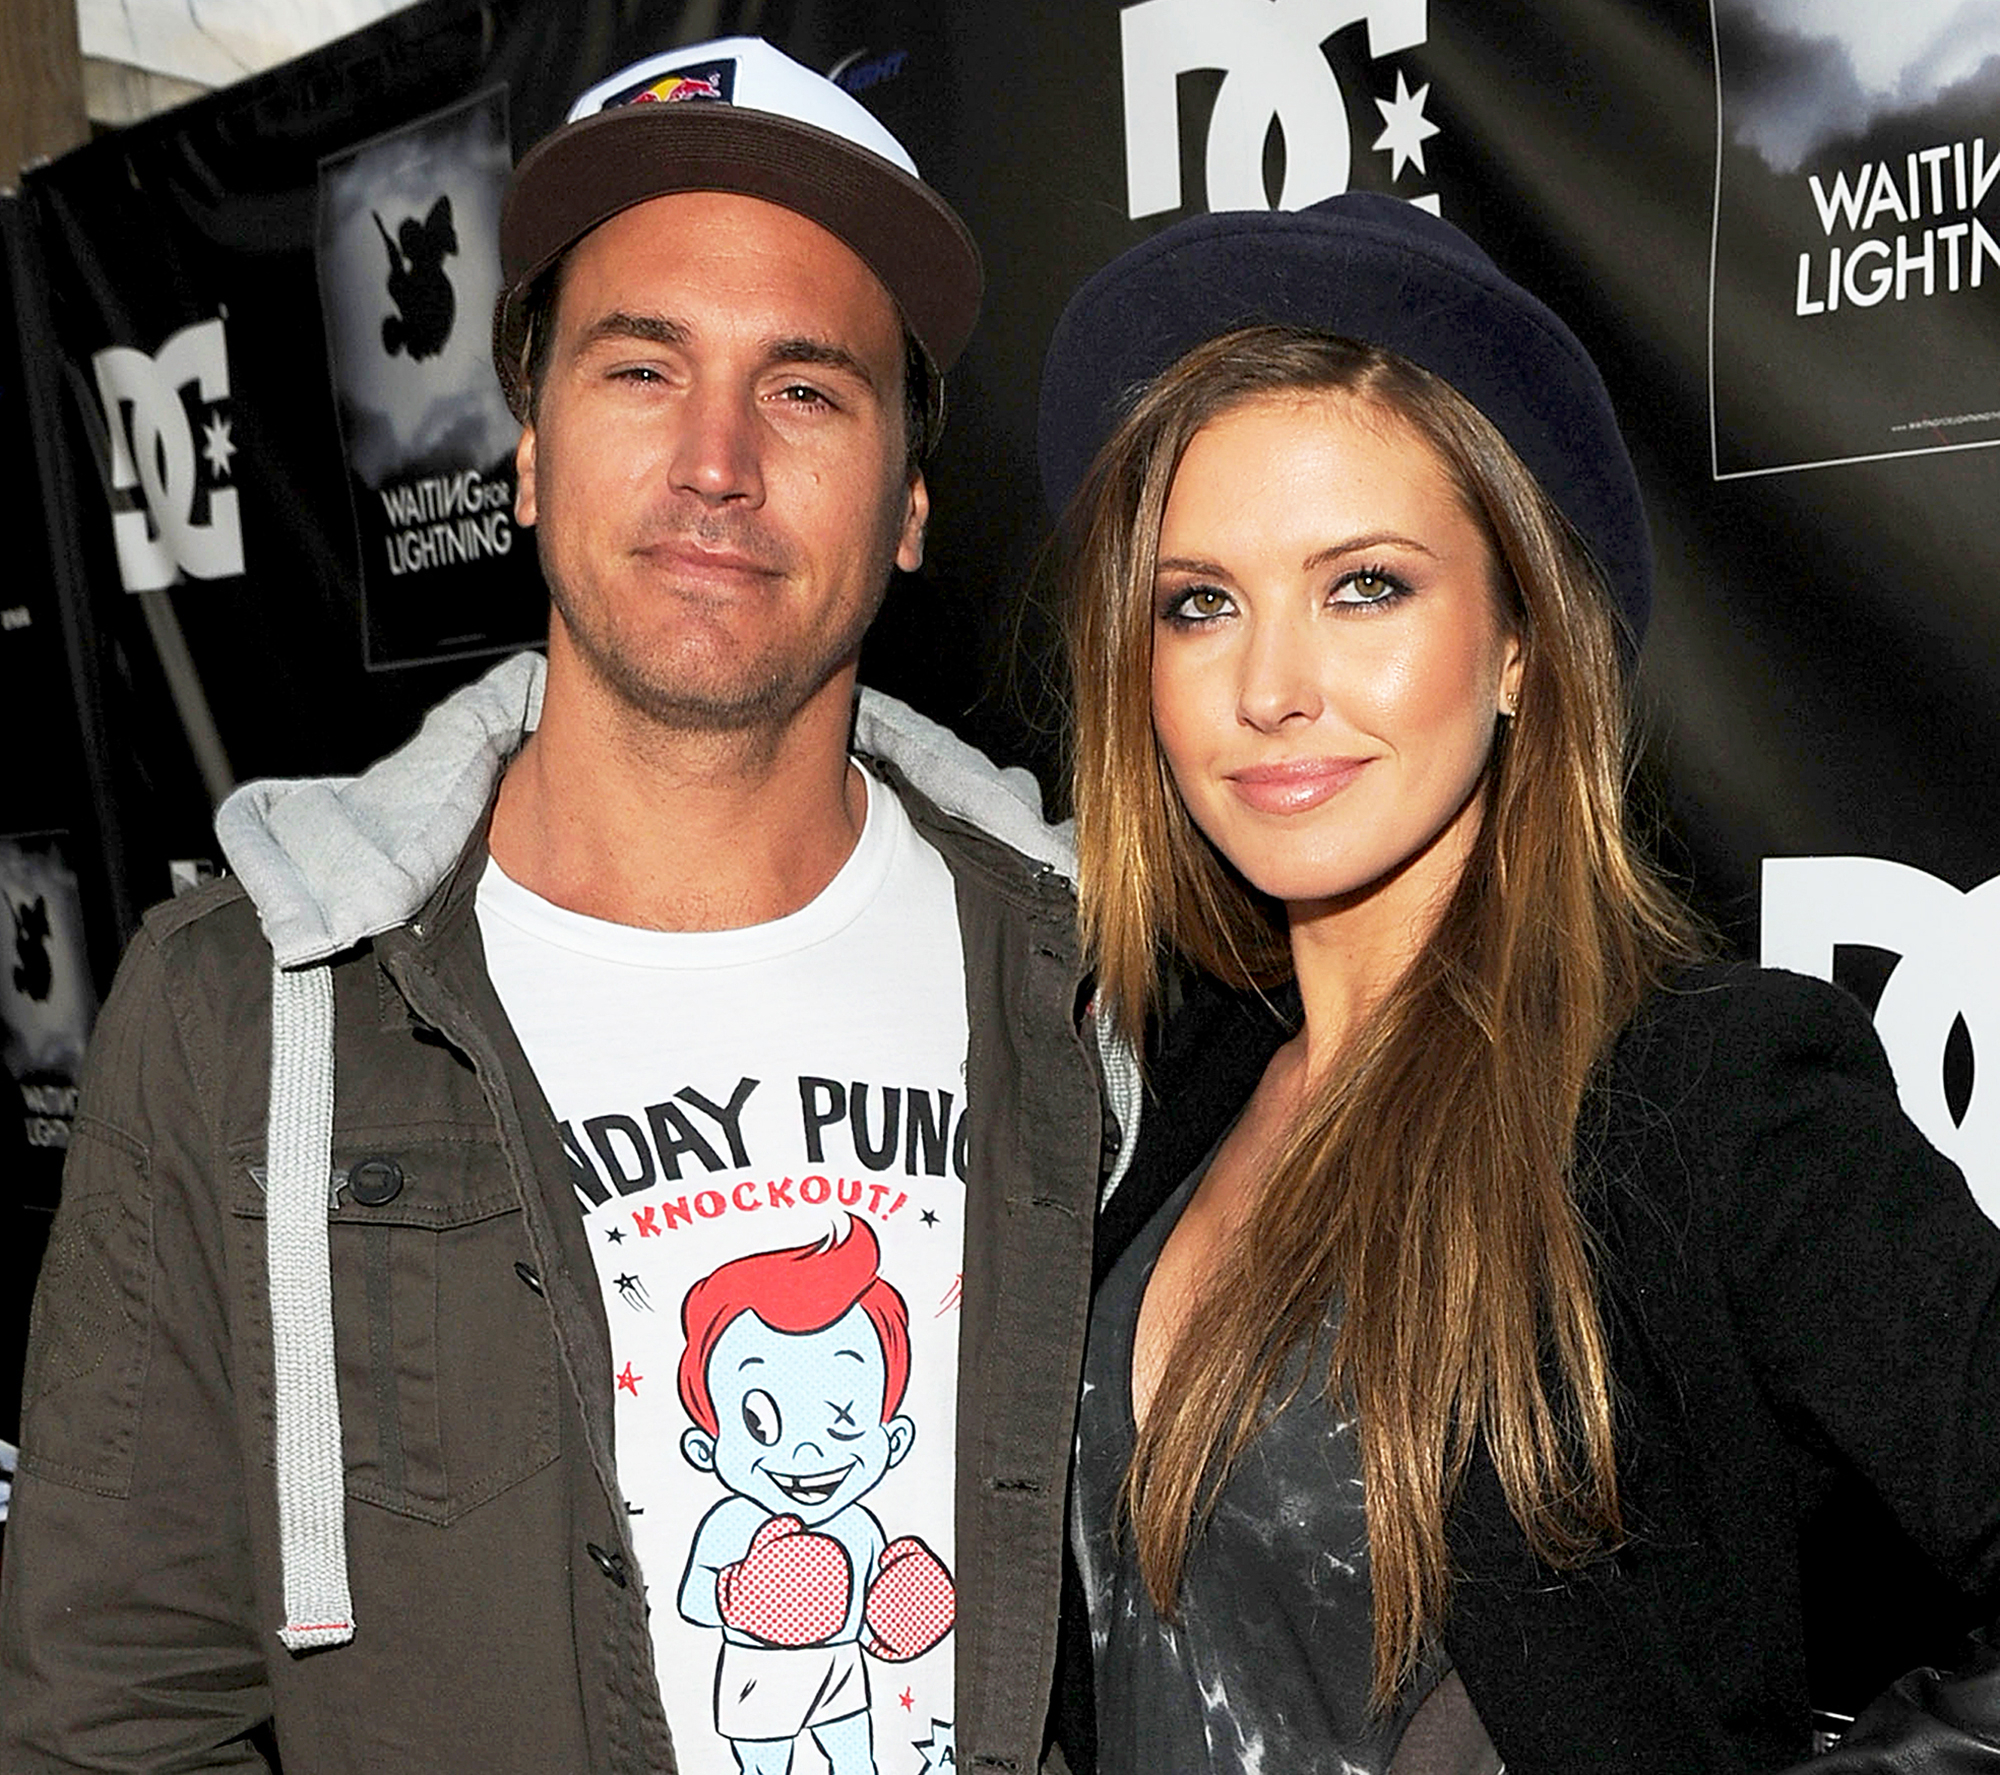 Corey Bohan and Audrina Patridge